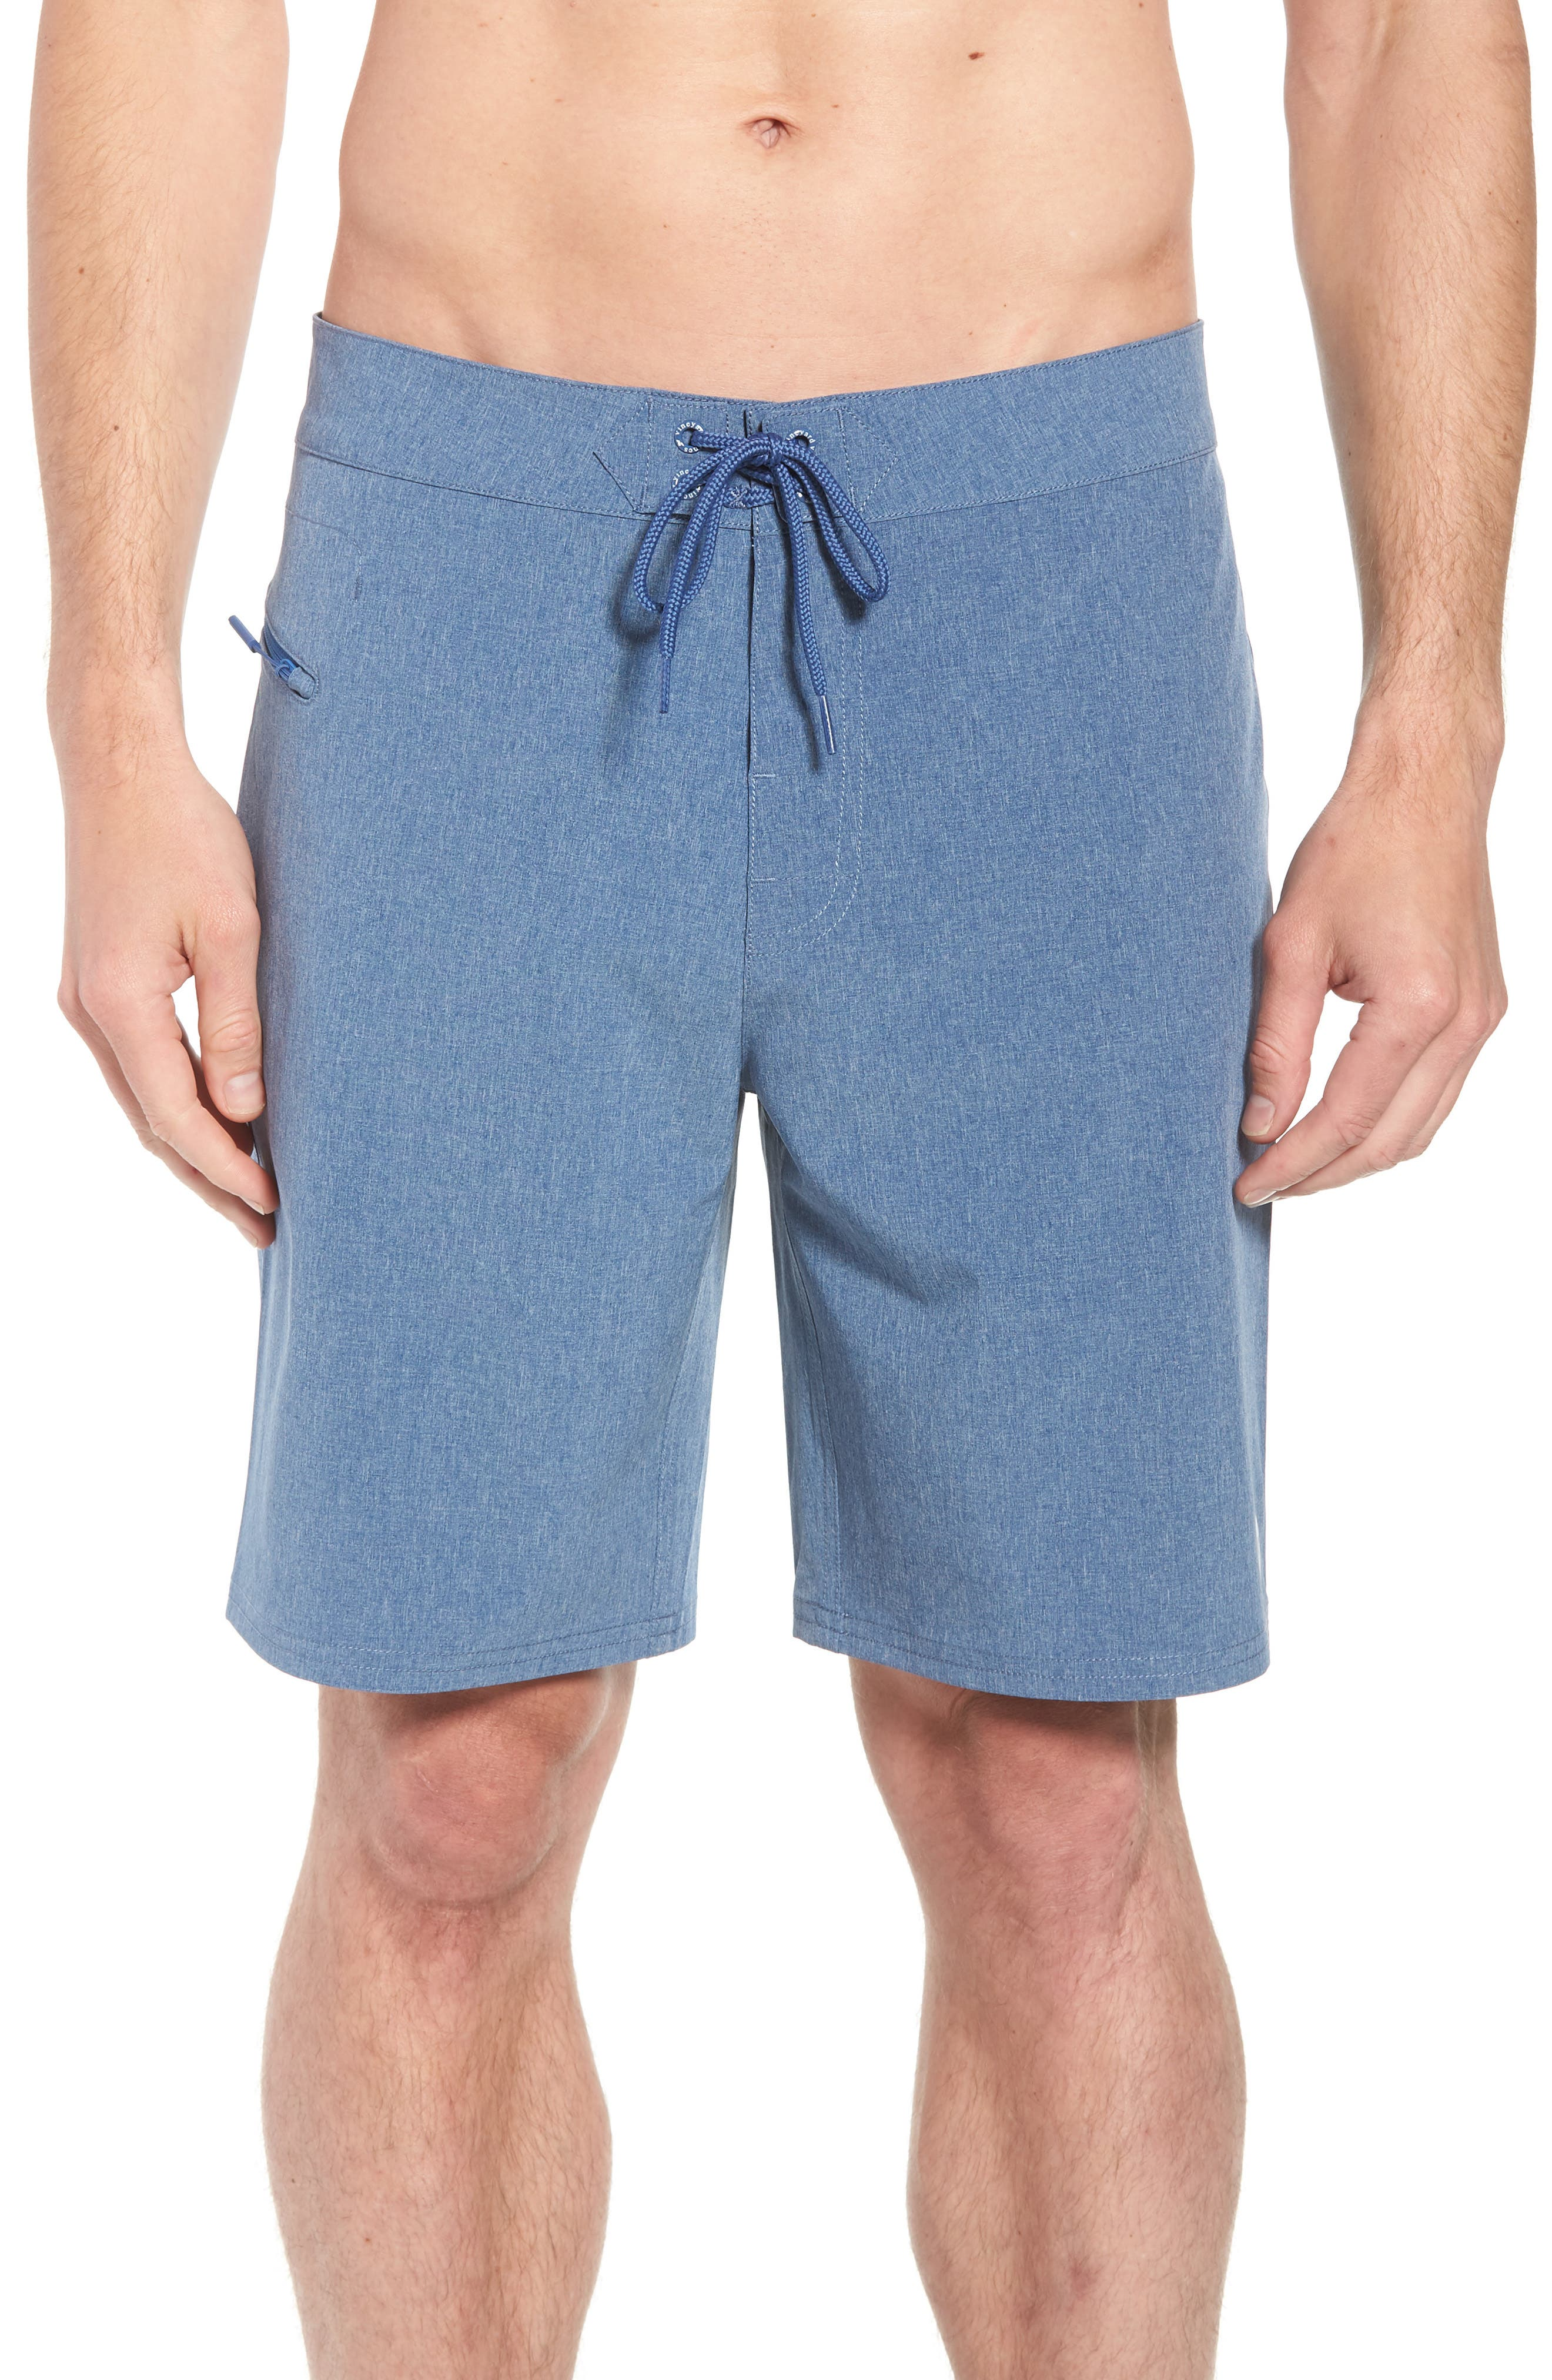 Heather Stretch Board Shorts,                             Main thumbnail 1, color,                             461